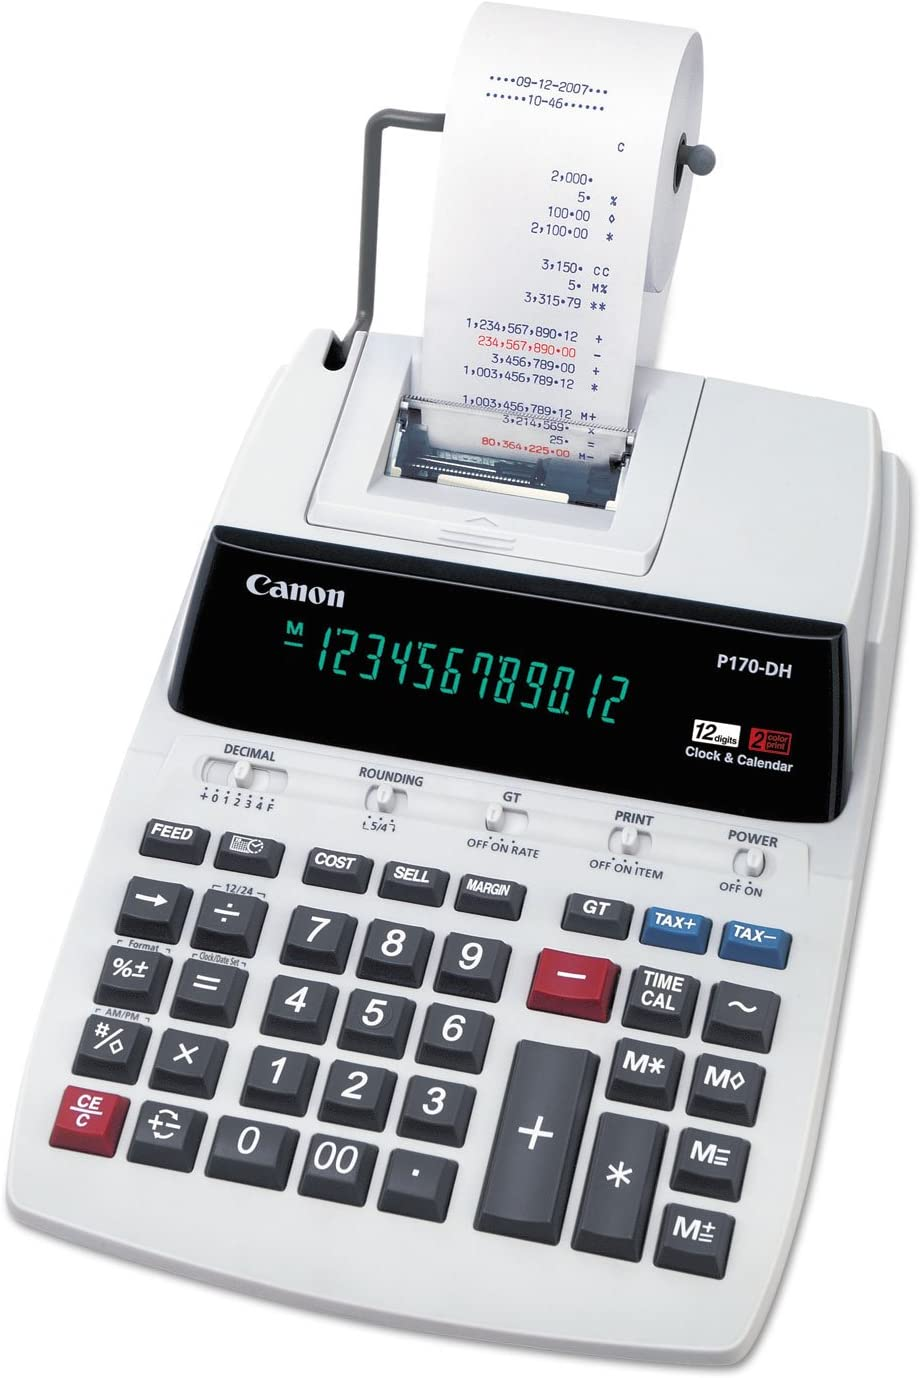 CNMP170DH3 - Canon P170DH3 Two-Color Roller Printing Calculator